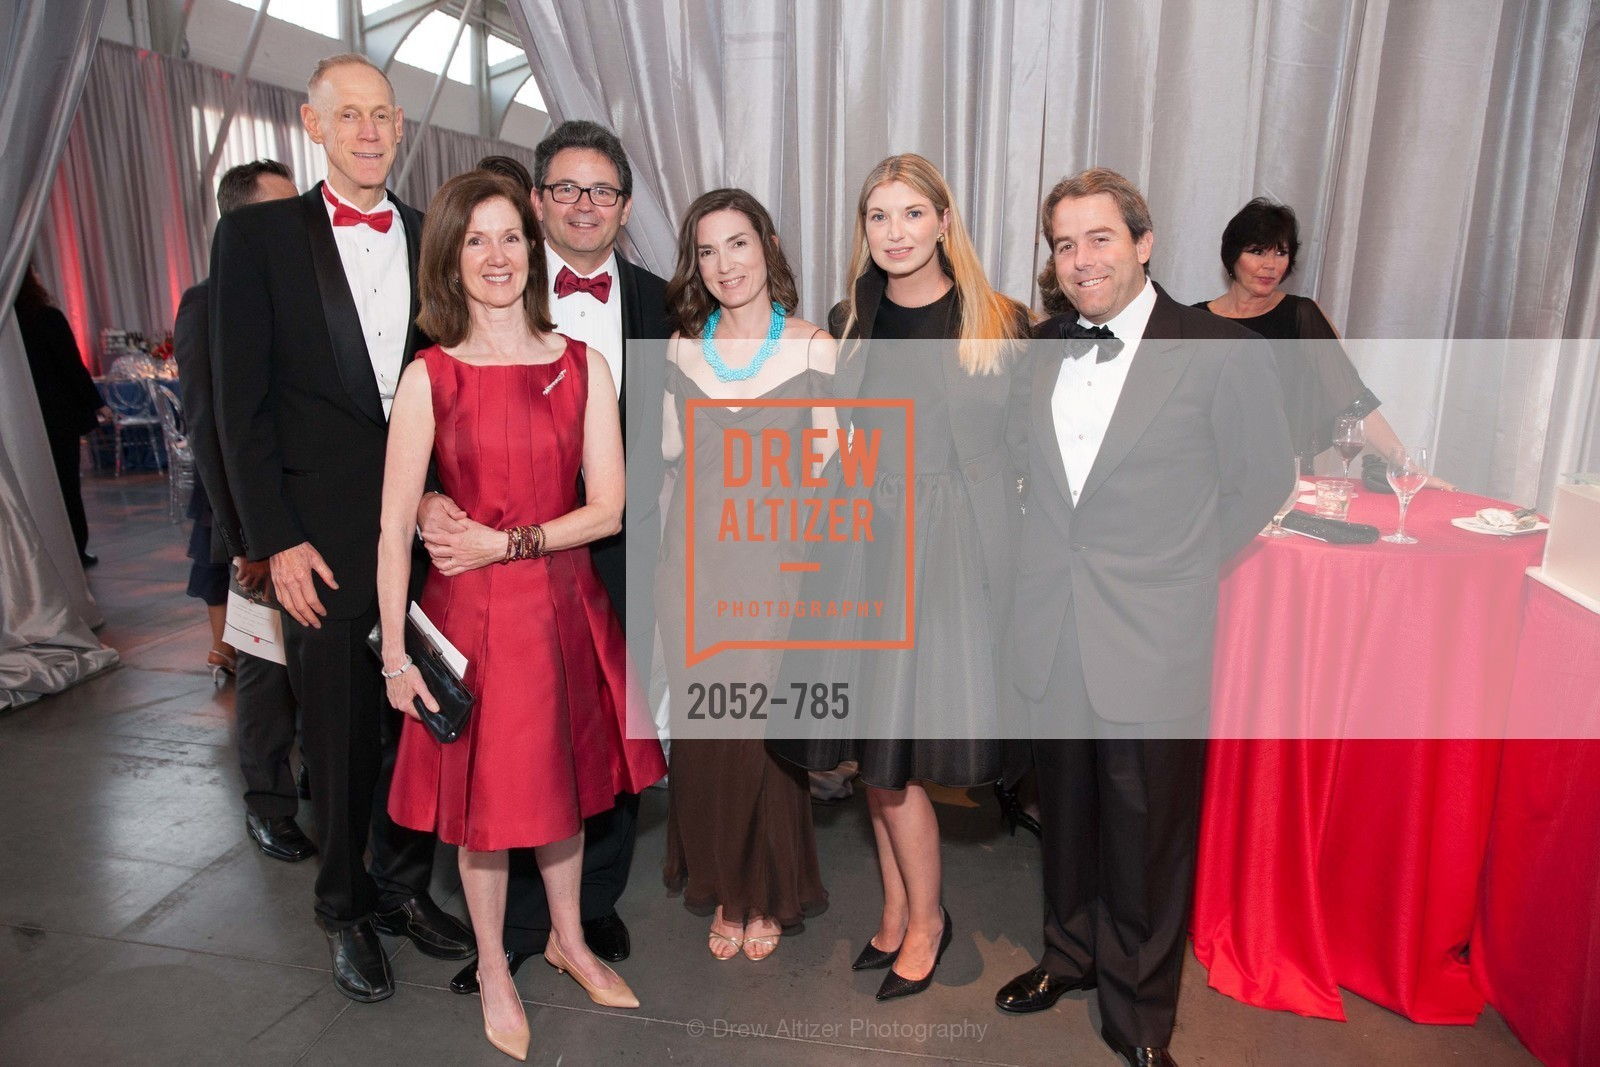 Tom Kelley, Frannie Allen, George Cogan, Abby Doolittle, Cameron Phleger, Michael Horwitz, 2015 RED CROSS Gala, US, April 12th, 2015,Drew Altizer, Drew Altizer Photography, full-service agency, private events, San Francisco photographer, photographer california